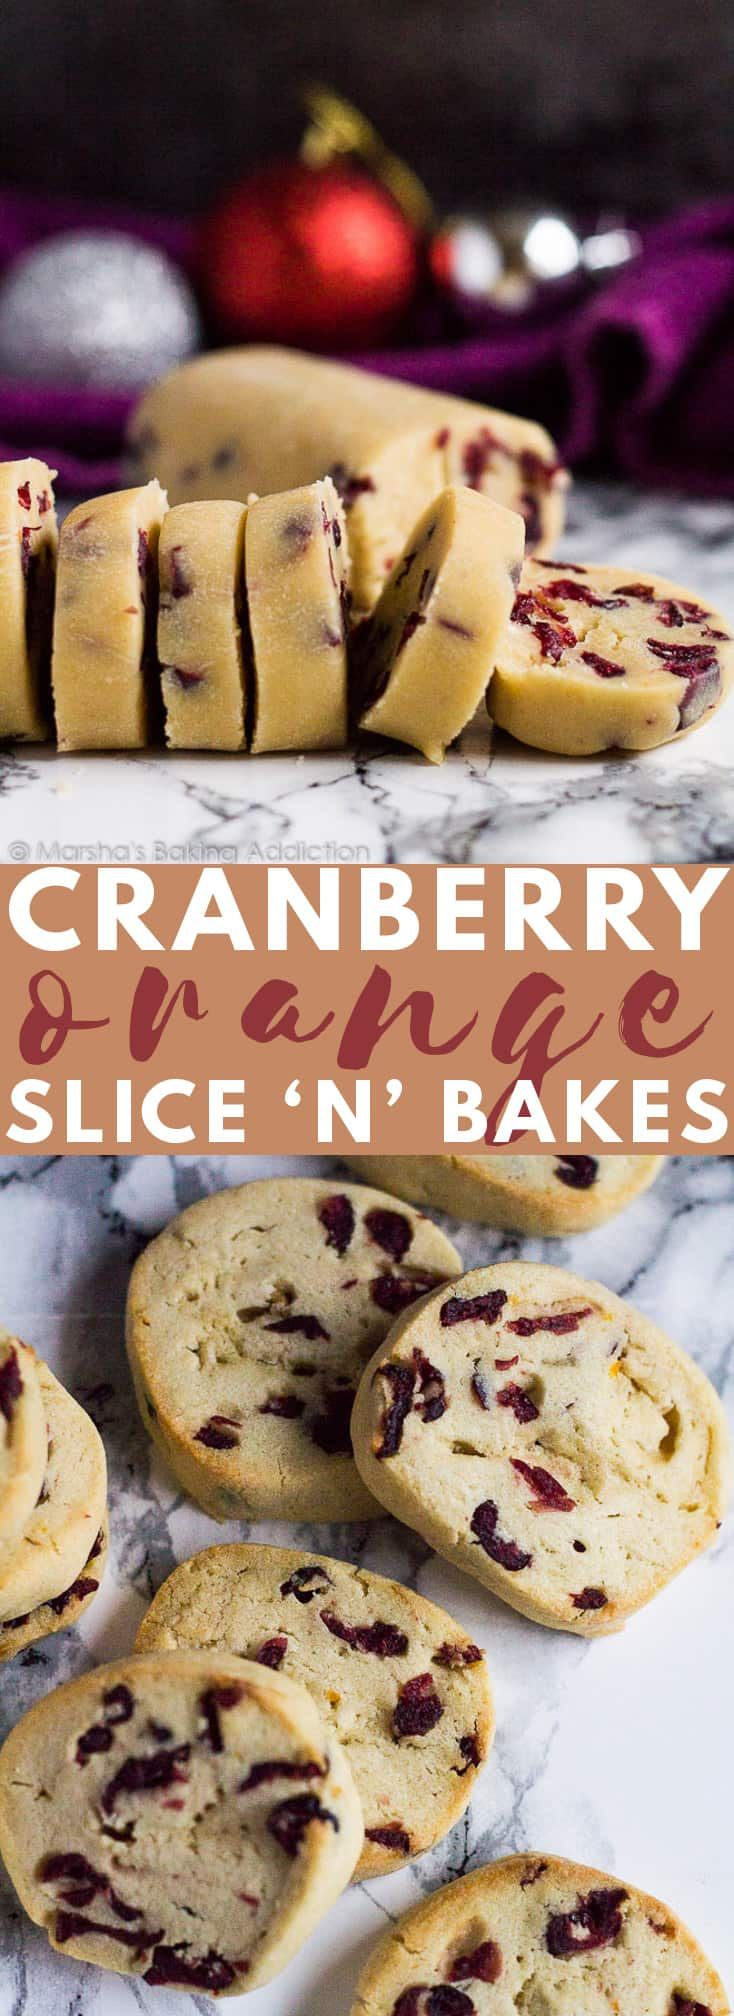 Cranberry Orange Slice 'n' Bake Cookies – Delicio…